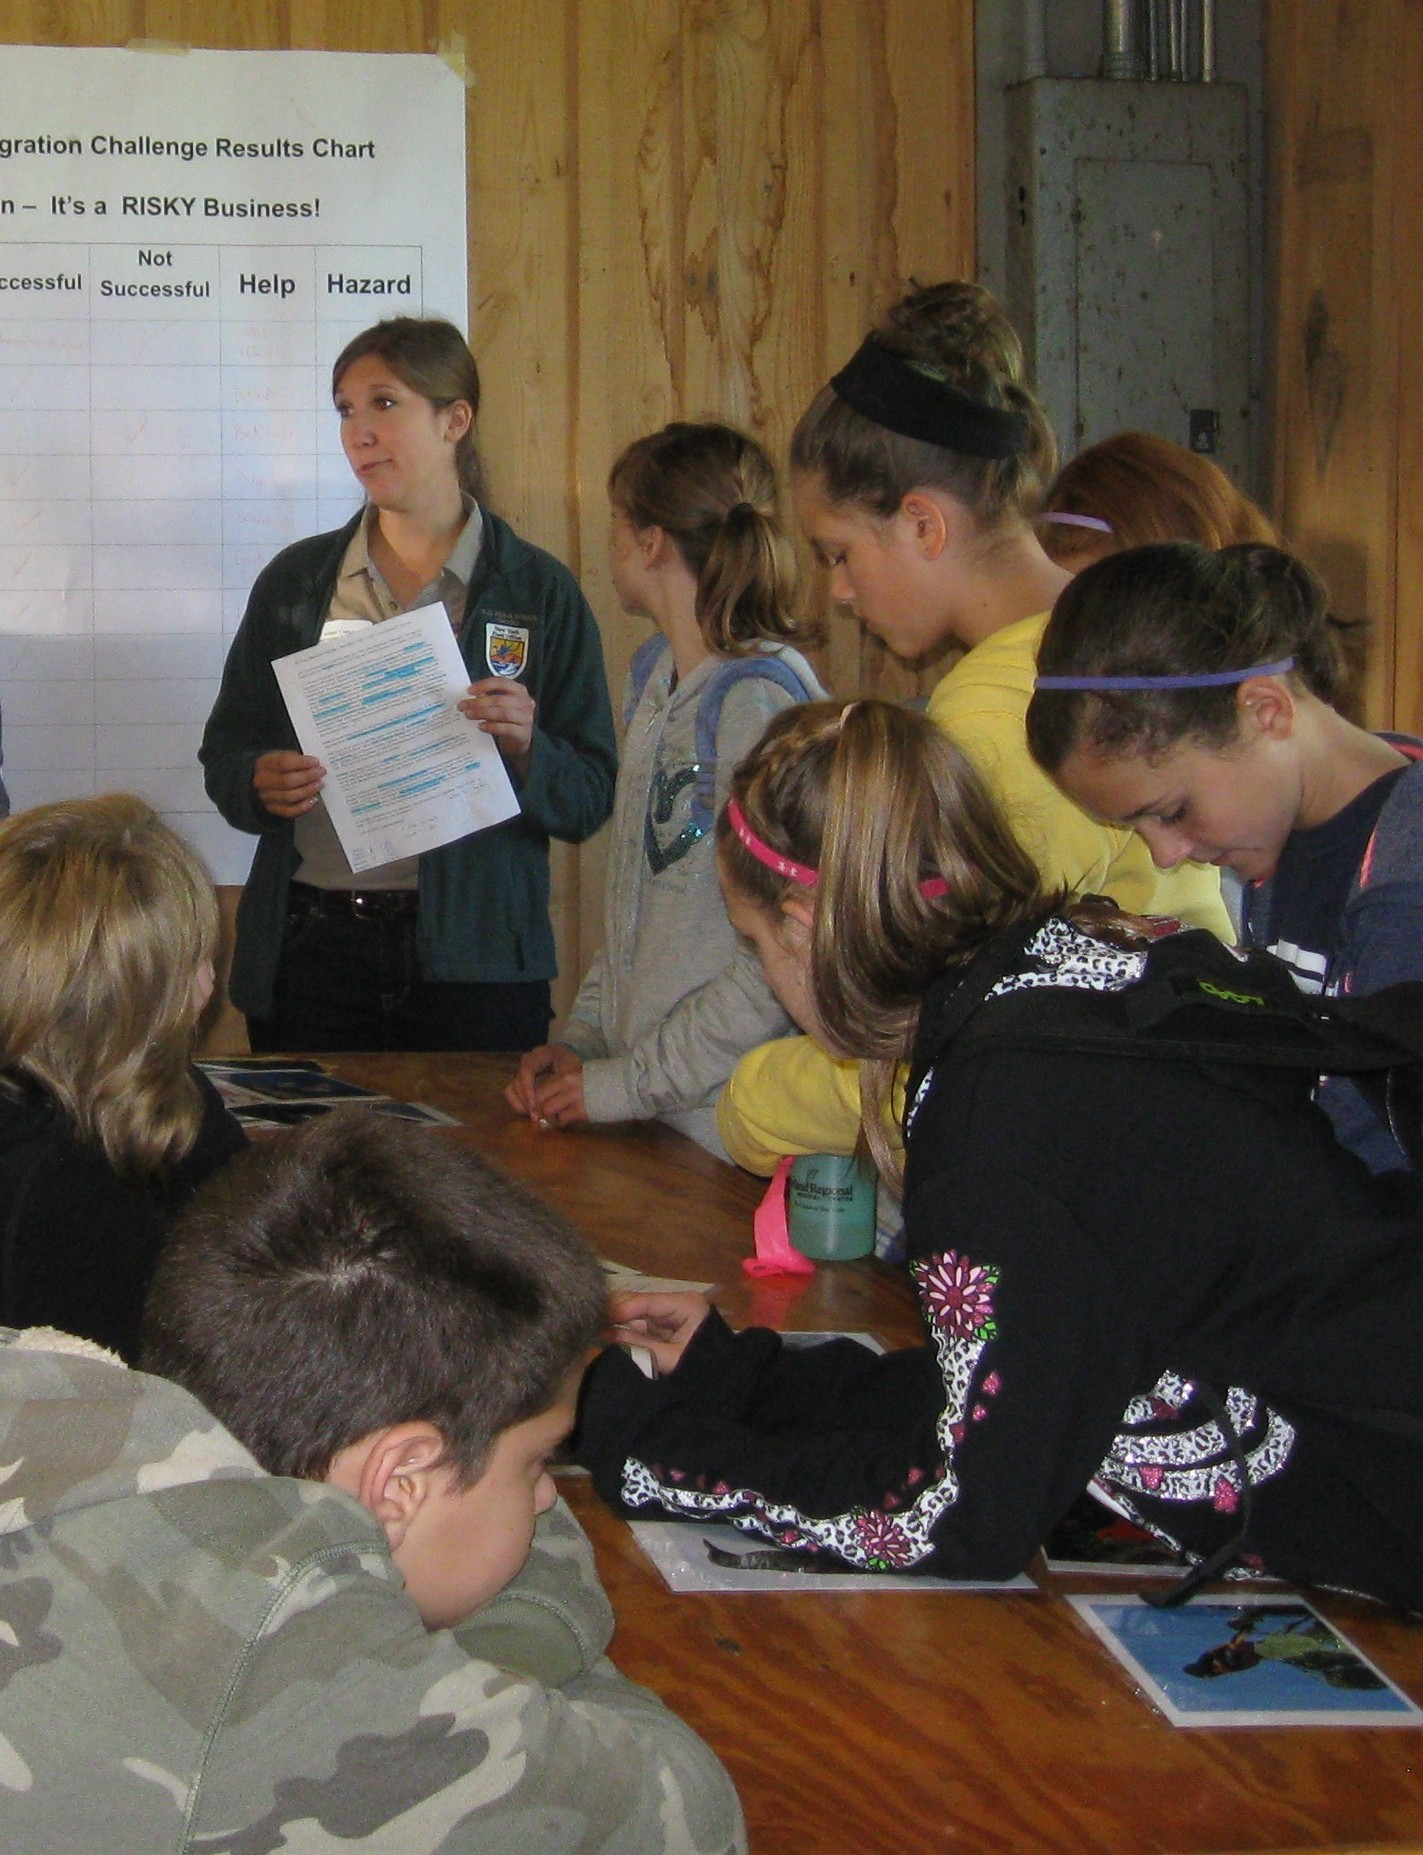 That's me, Bethany, giving the Great Migration Challenge activity instructions. Credit: USFWS